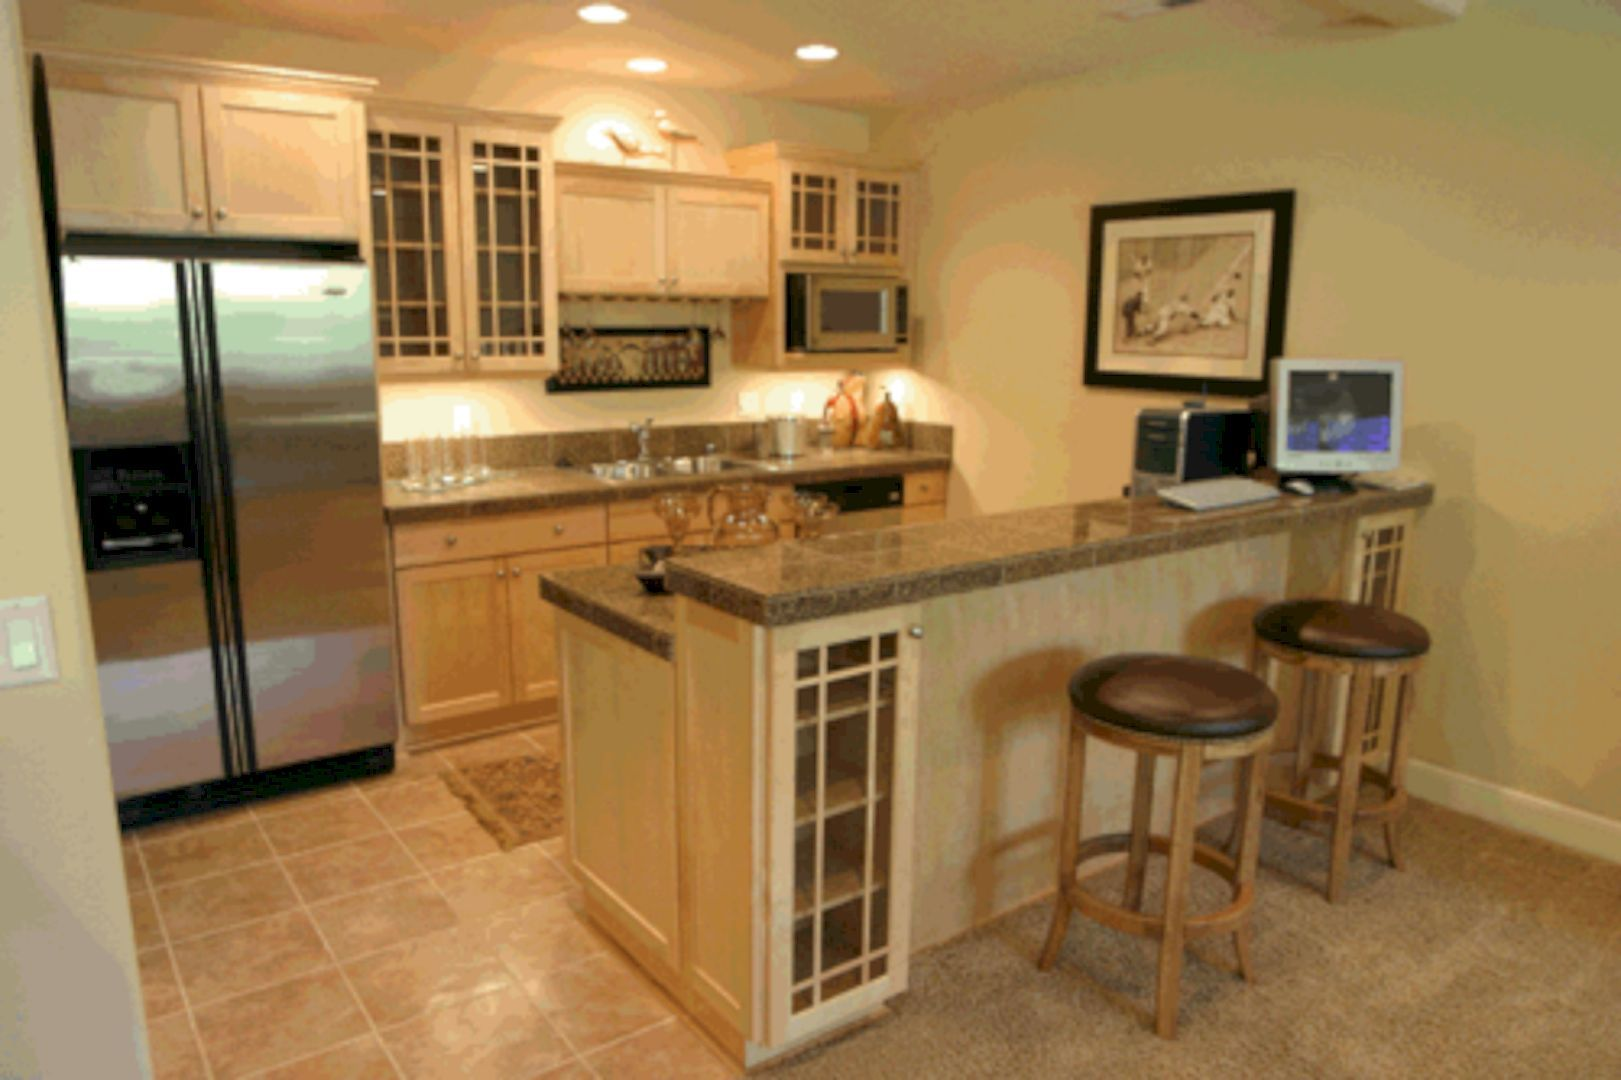 Top 9 Kitchen Organization Tips for Small House   Basement kitchen ...